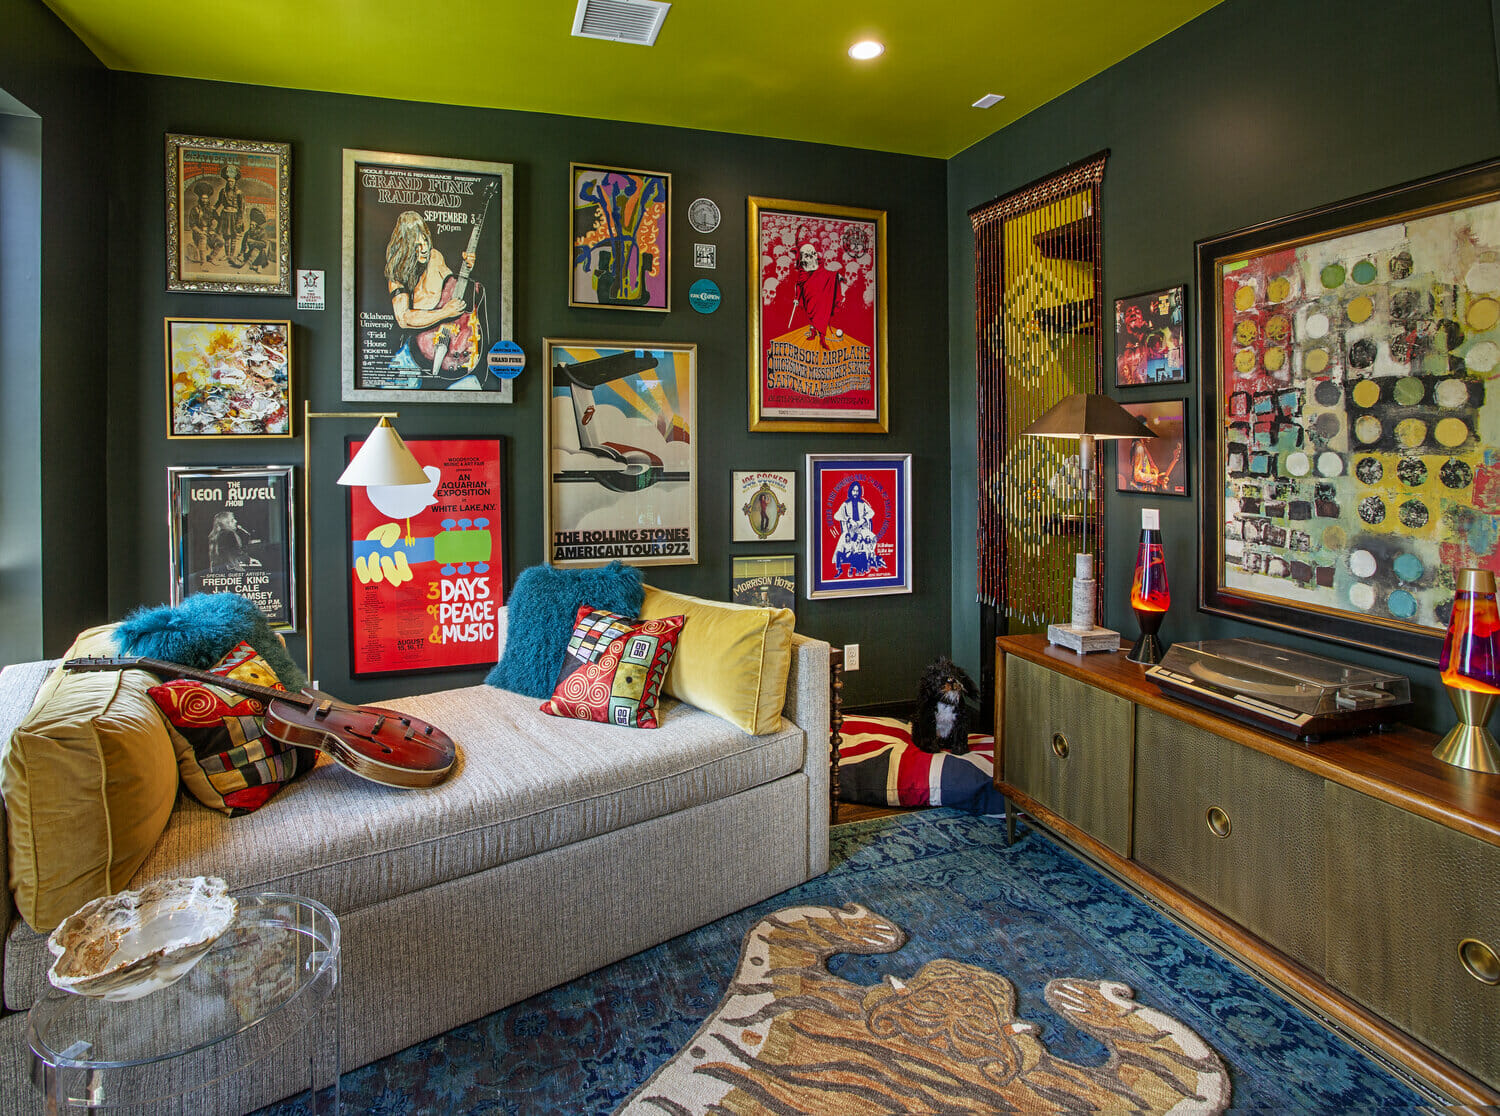 Eclectic home by one of the top Oklahoma city interior designers, Katelynn Henry